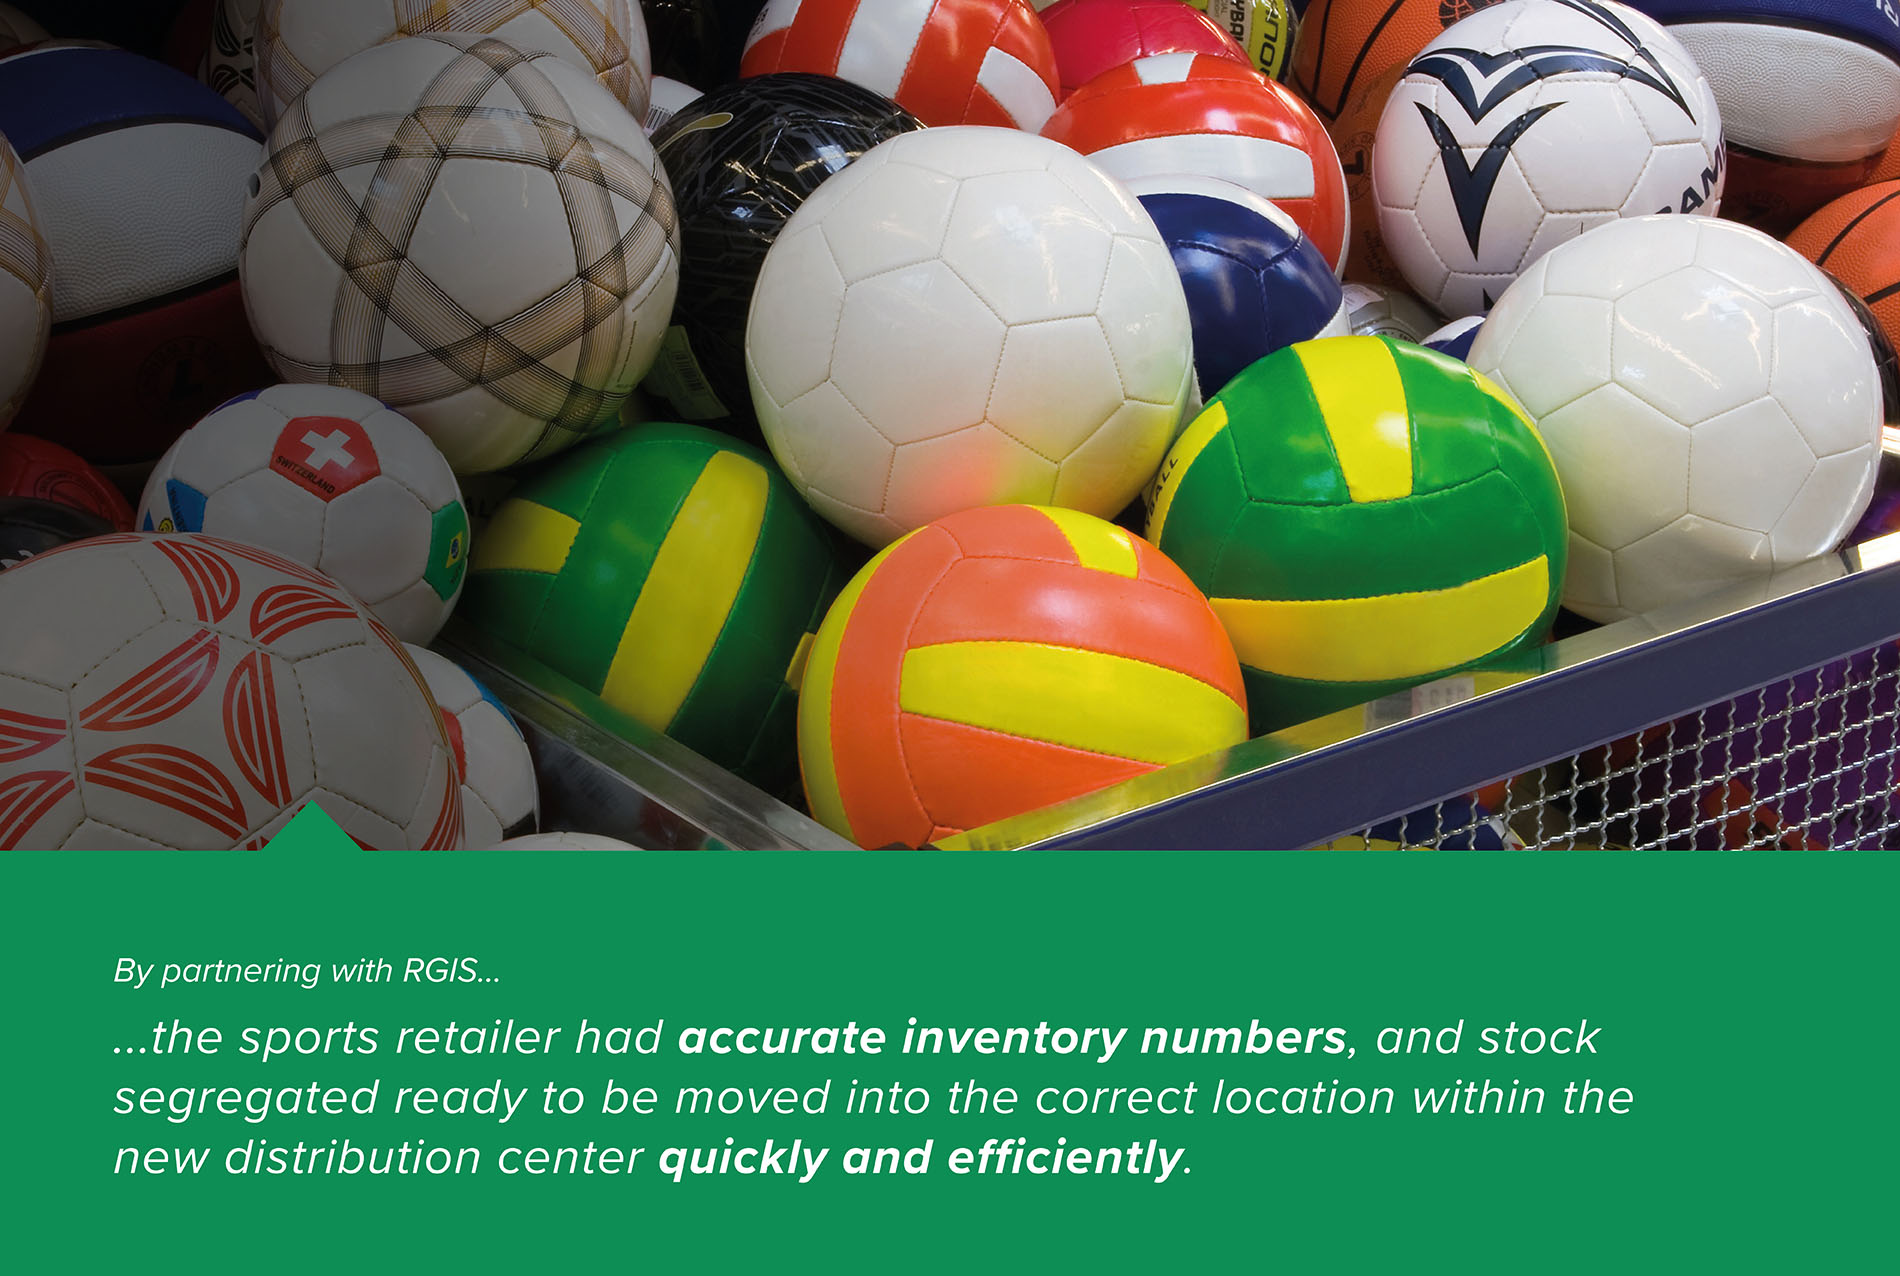 Full Inventory of Sporting Goods Prior to Moving to New Distribution Center